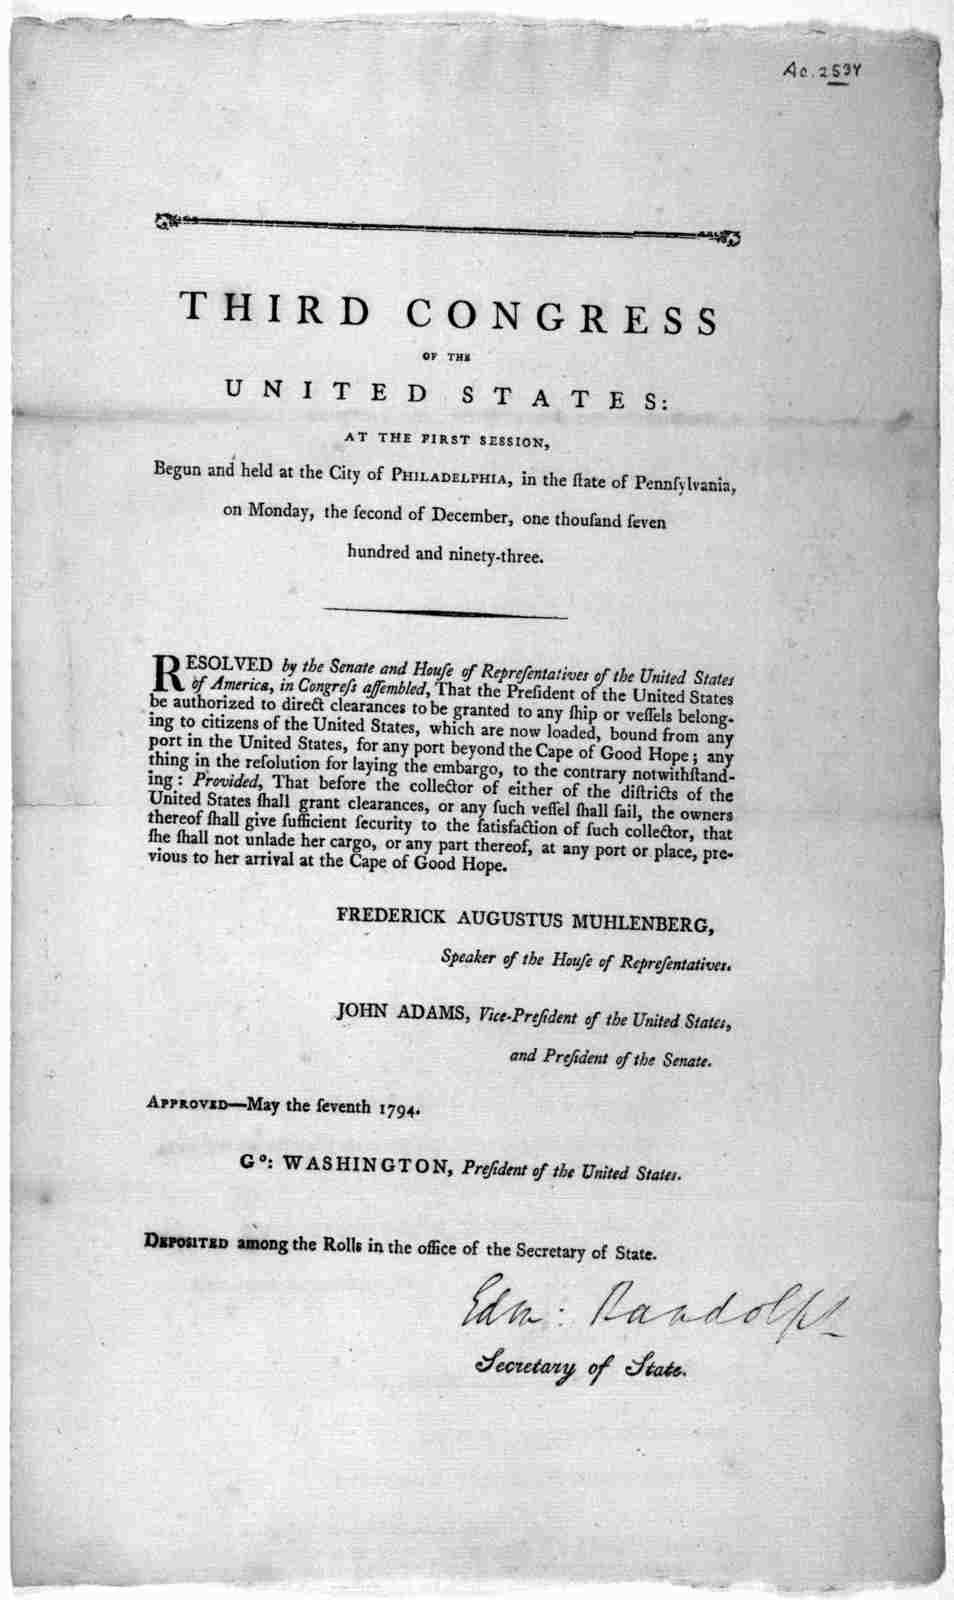 U.S. Congress.  Resolved by the Senate and House of Representatives of the United States of America, in Congress assembled, That the President of the United States be authorized to direct clearances to be granted to any ship or vessels belonging